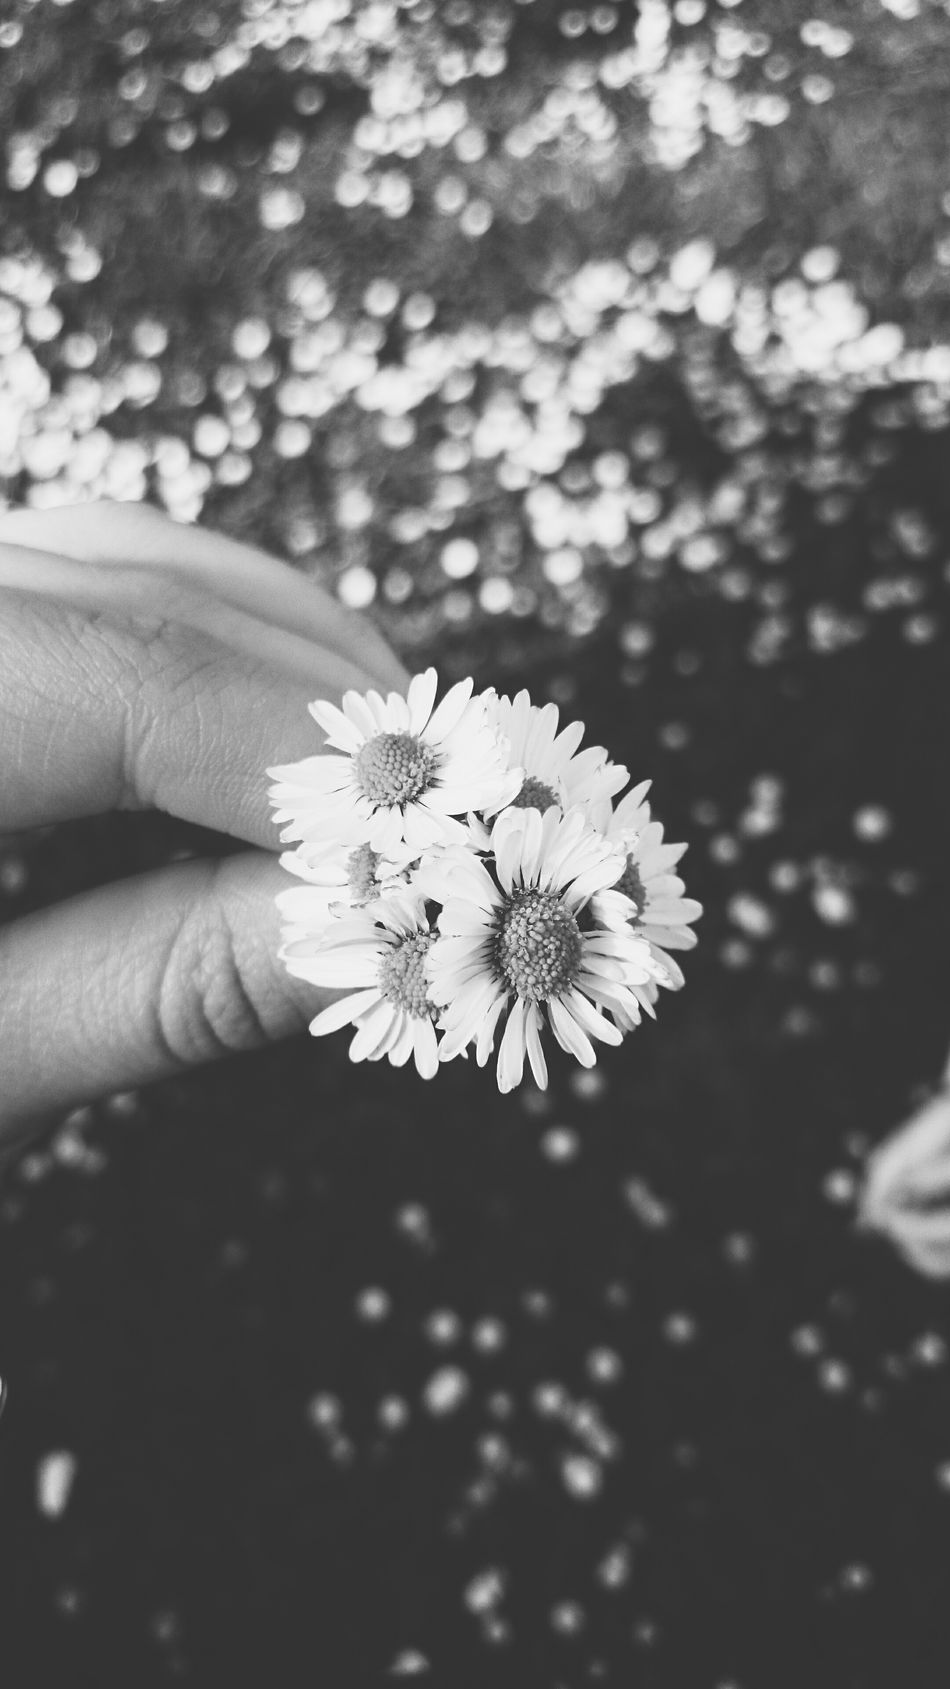 Simple things make life beautiful! 🌞🌼🌺🌸💕 Relaxing Hello World Taking Photos Spring Flowers Daisies Happiness Blackandwhite